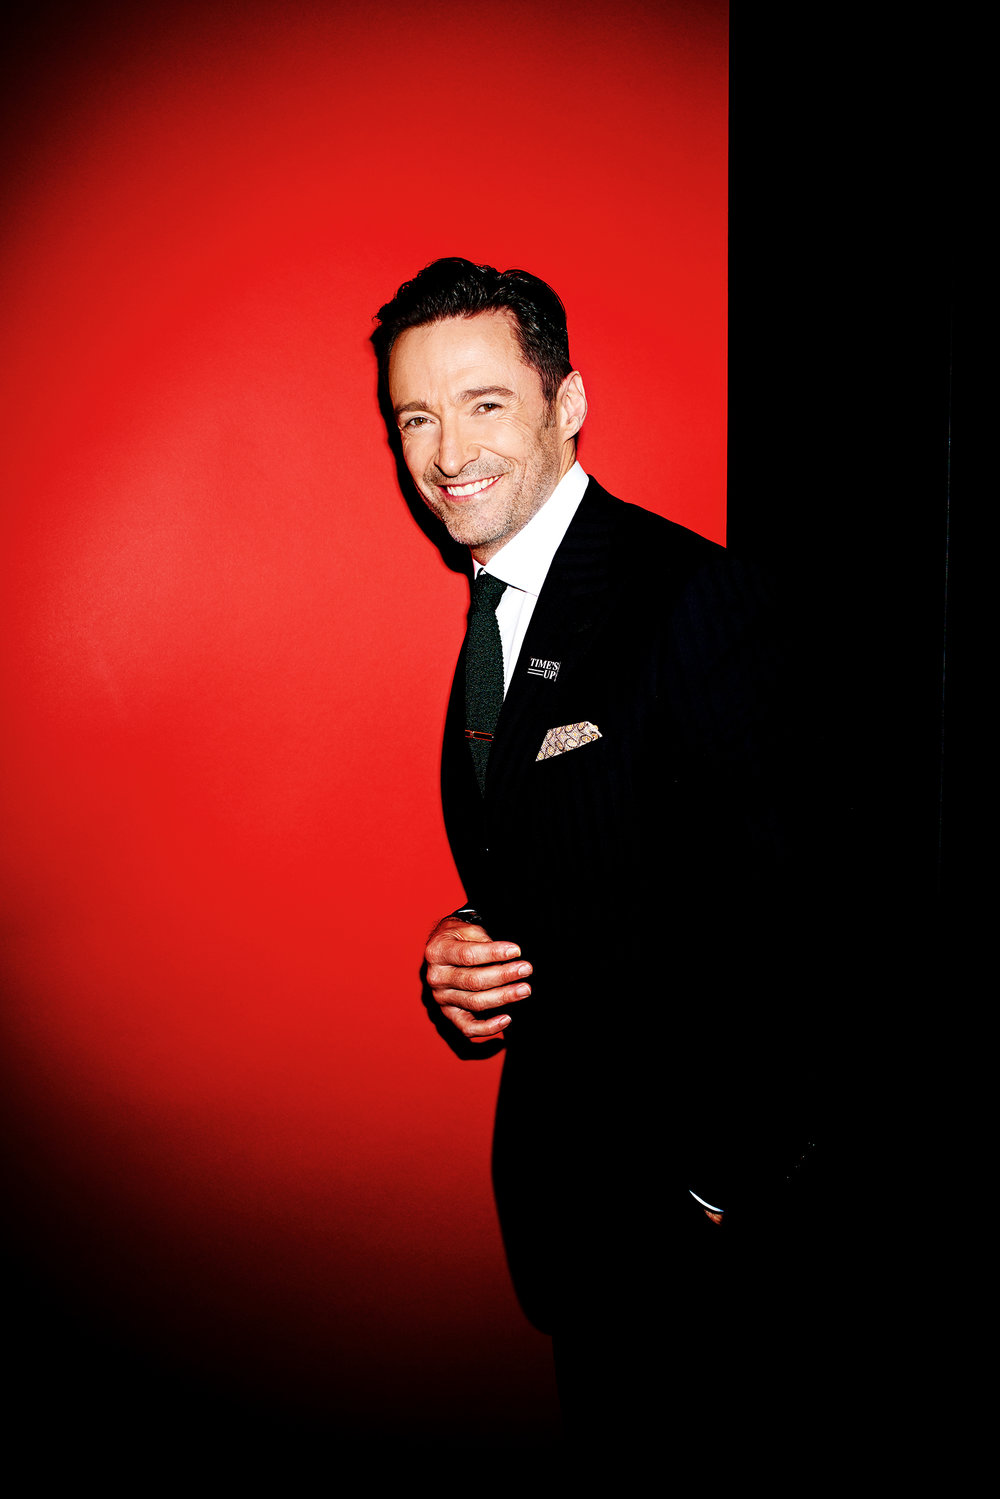 empire hugh jackman.jpg